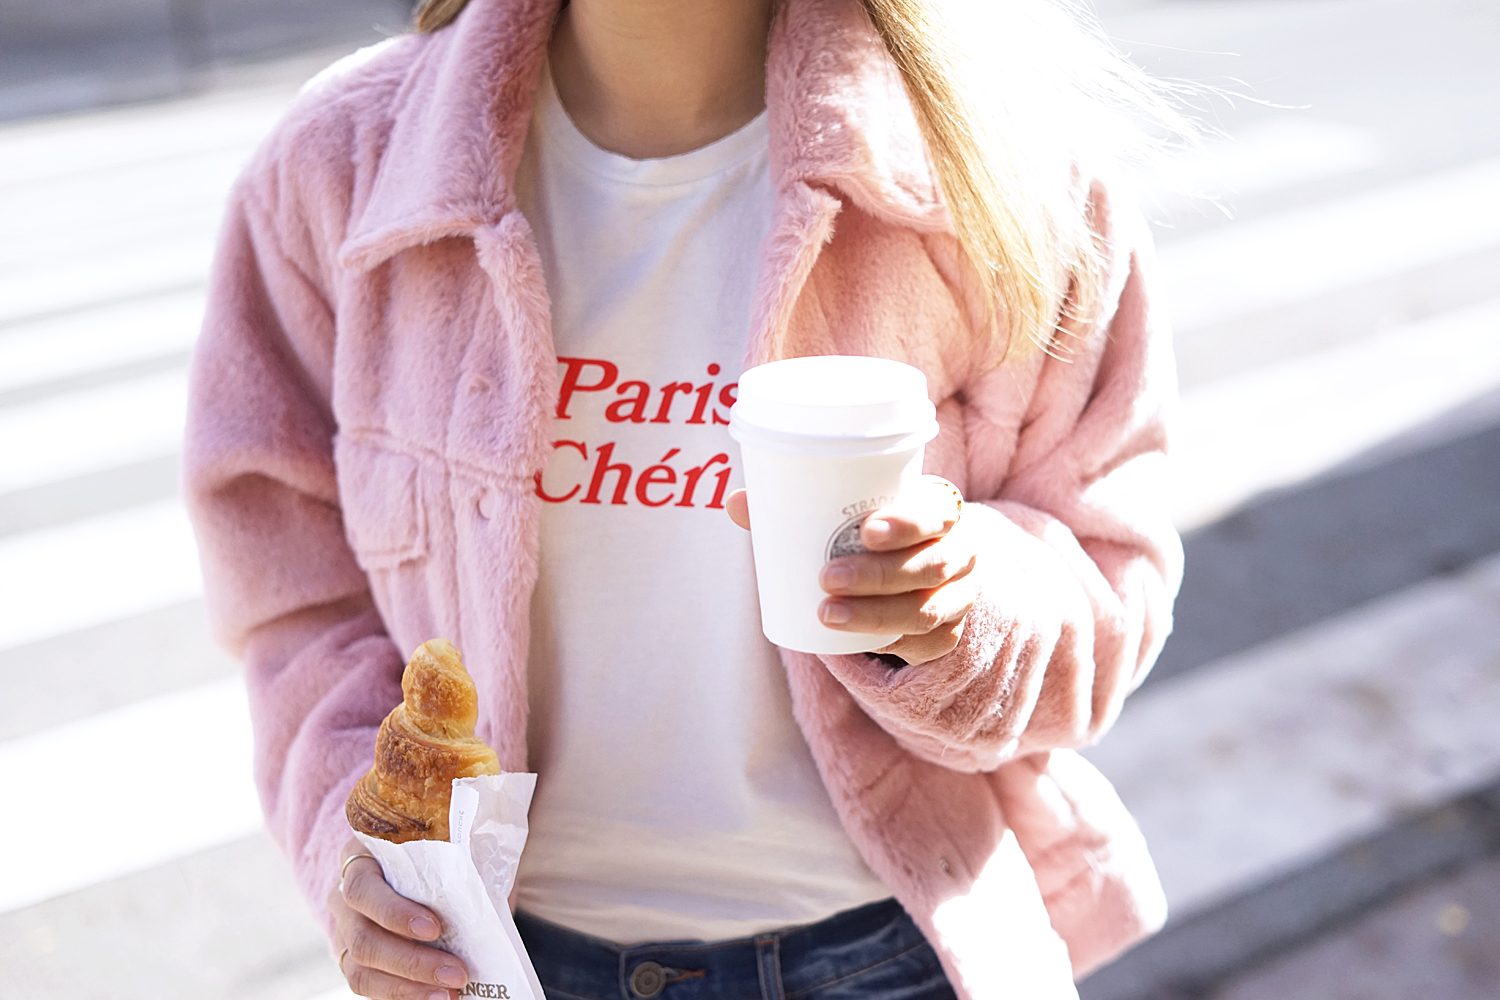 01paris-french-paris-croissant-coffee